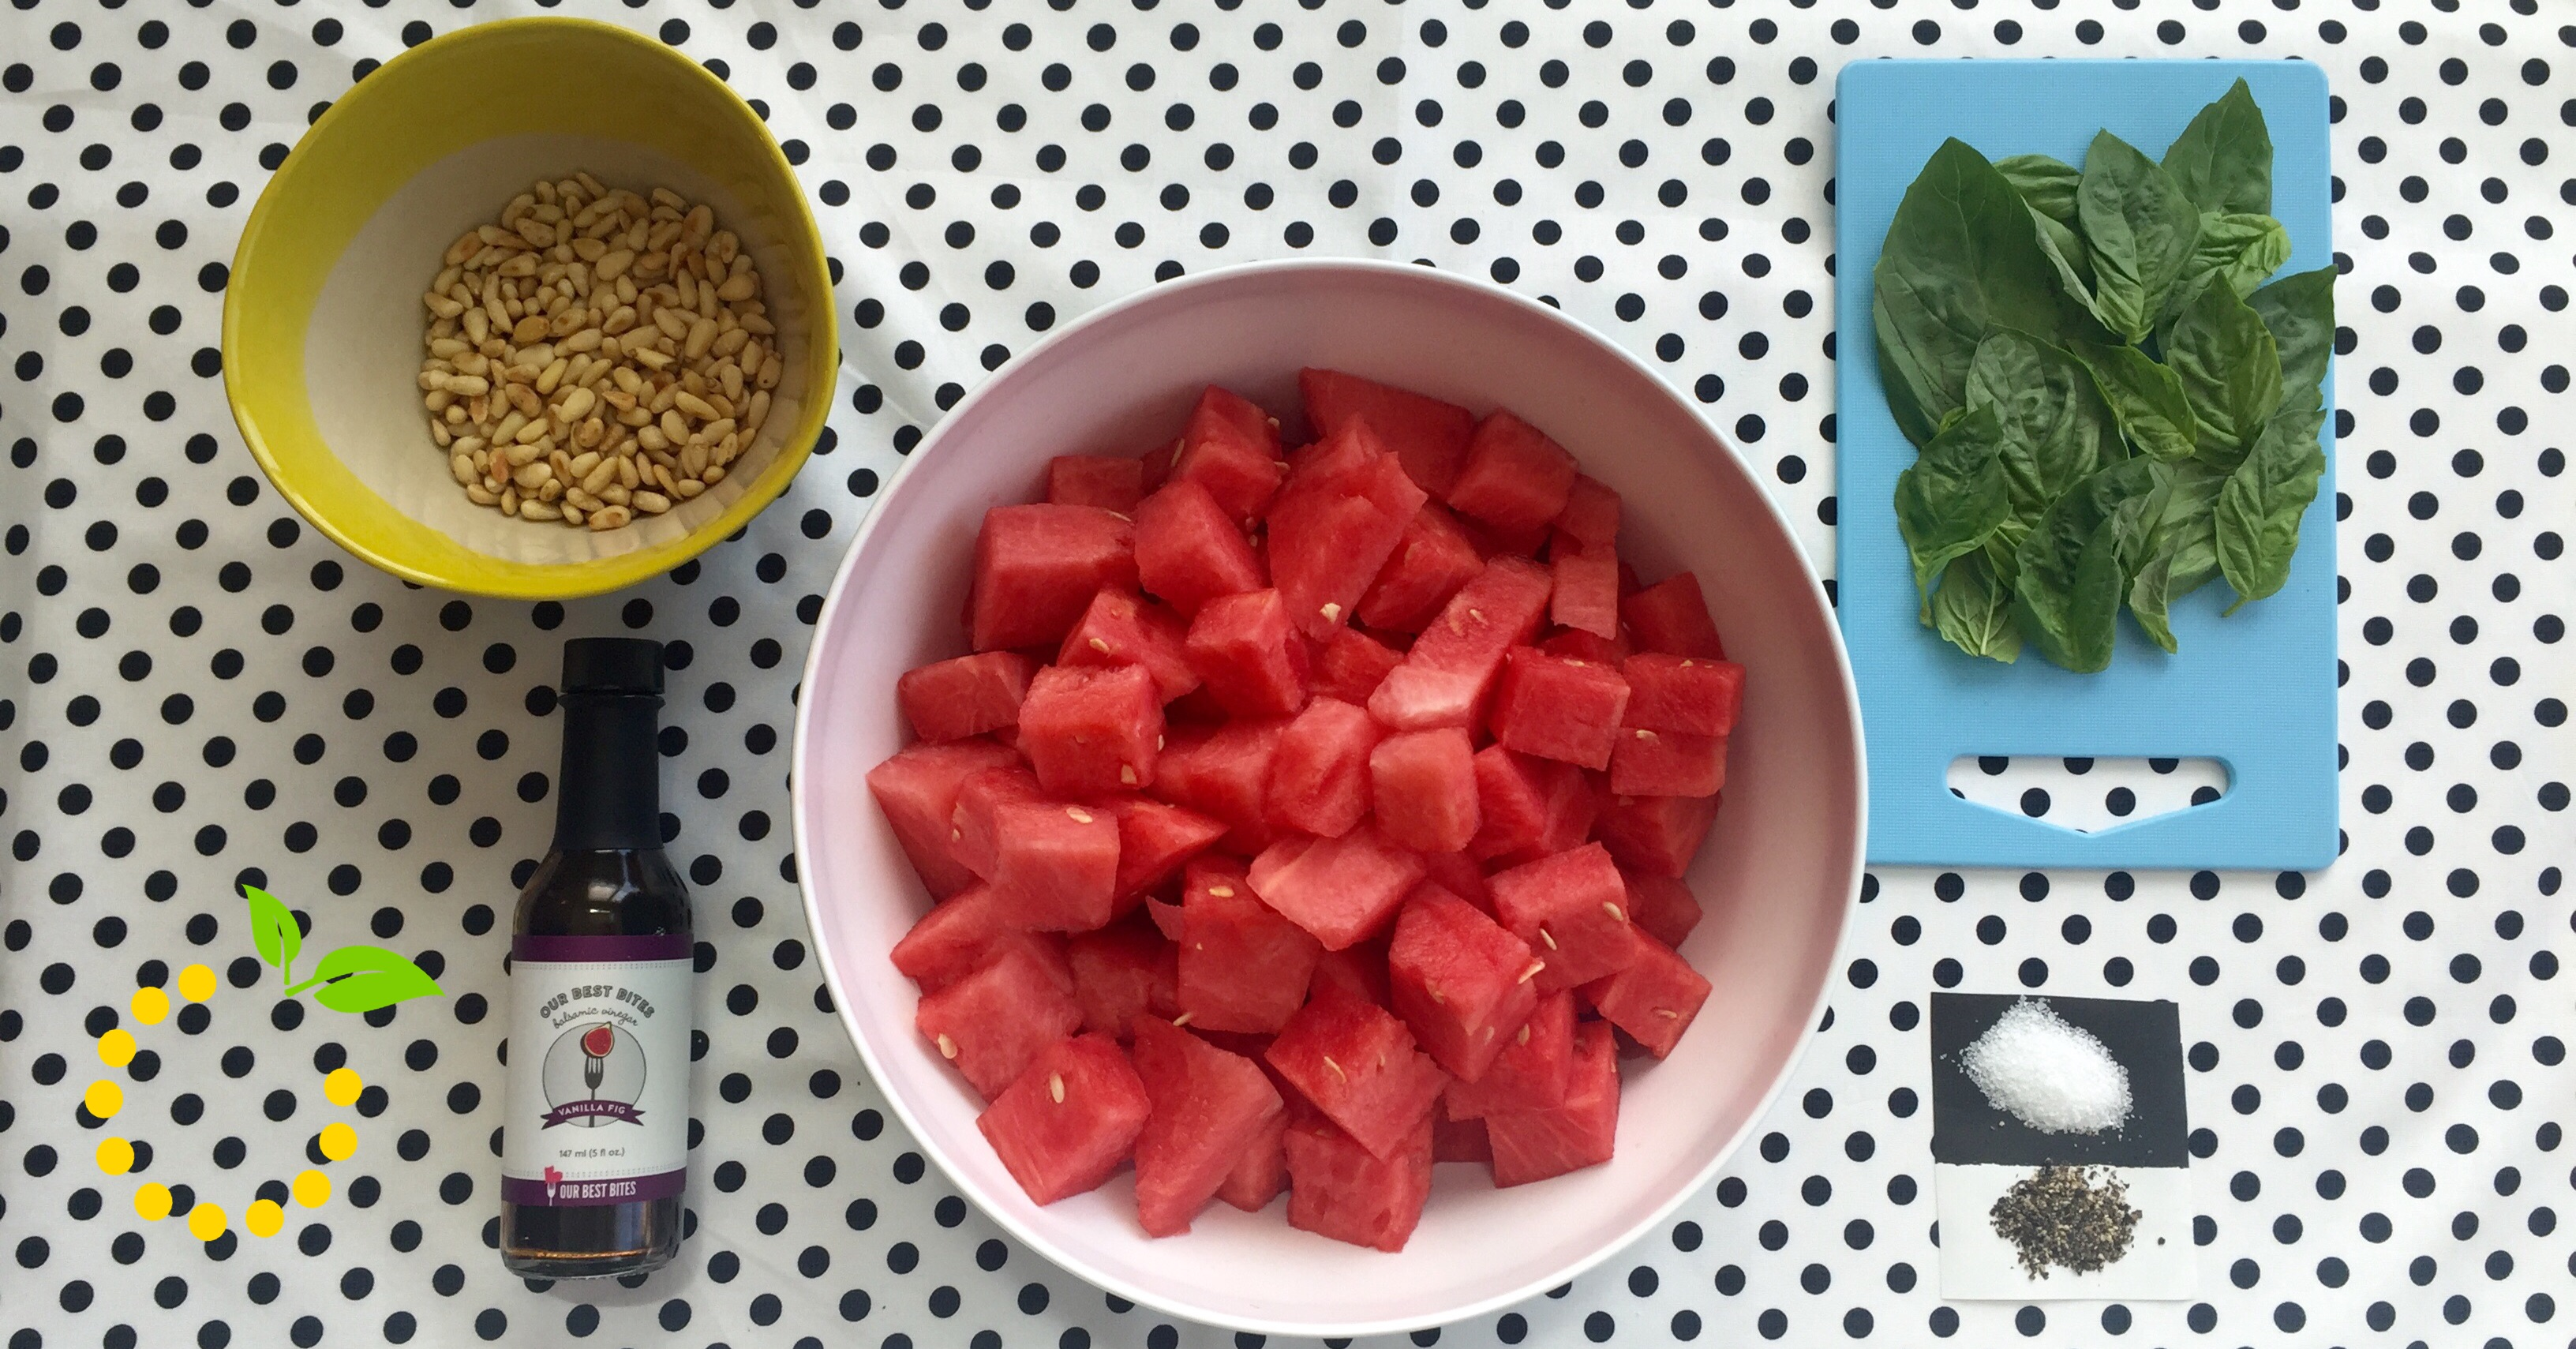 Watermelon Salad Ingredients sweetlemonmade.com